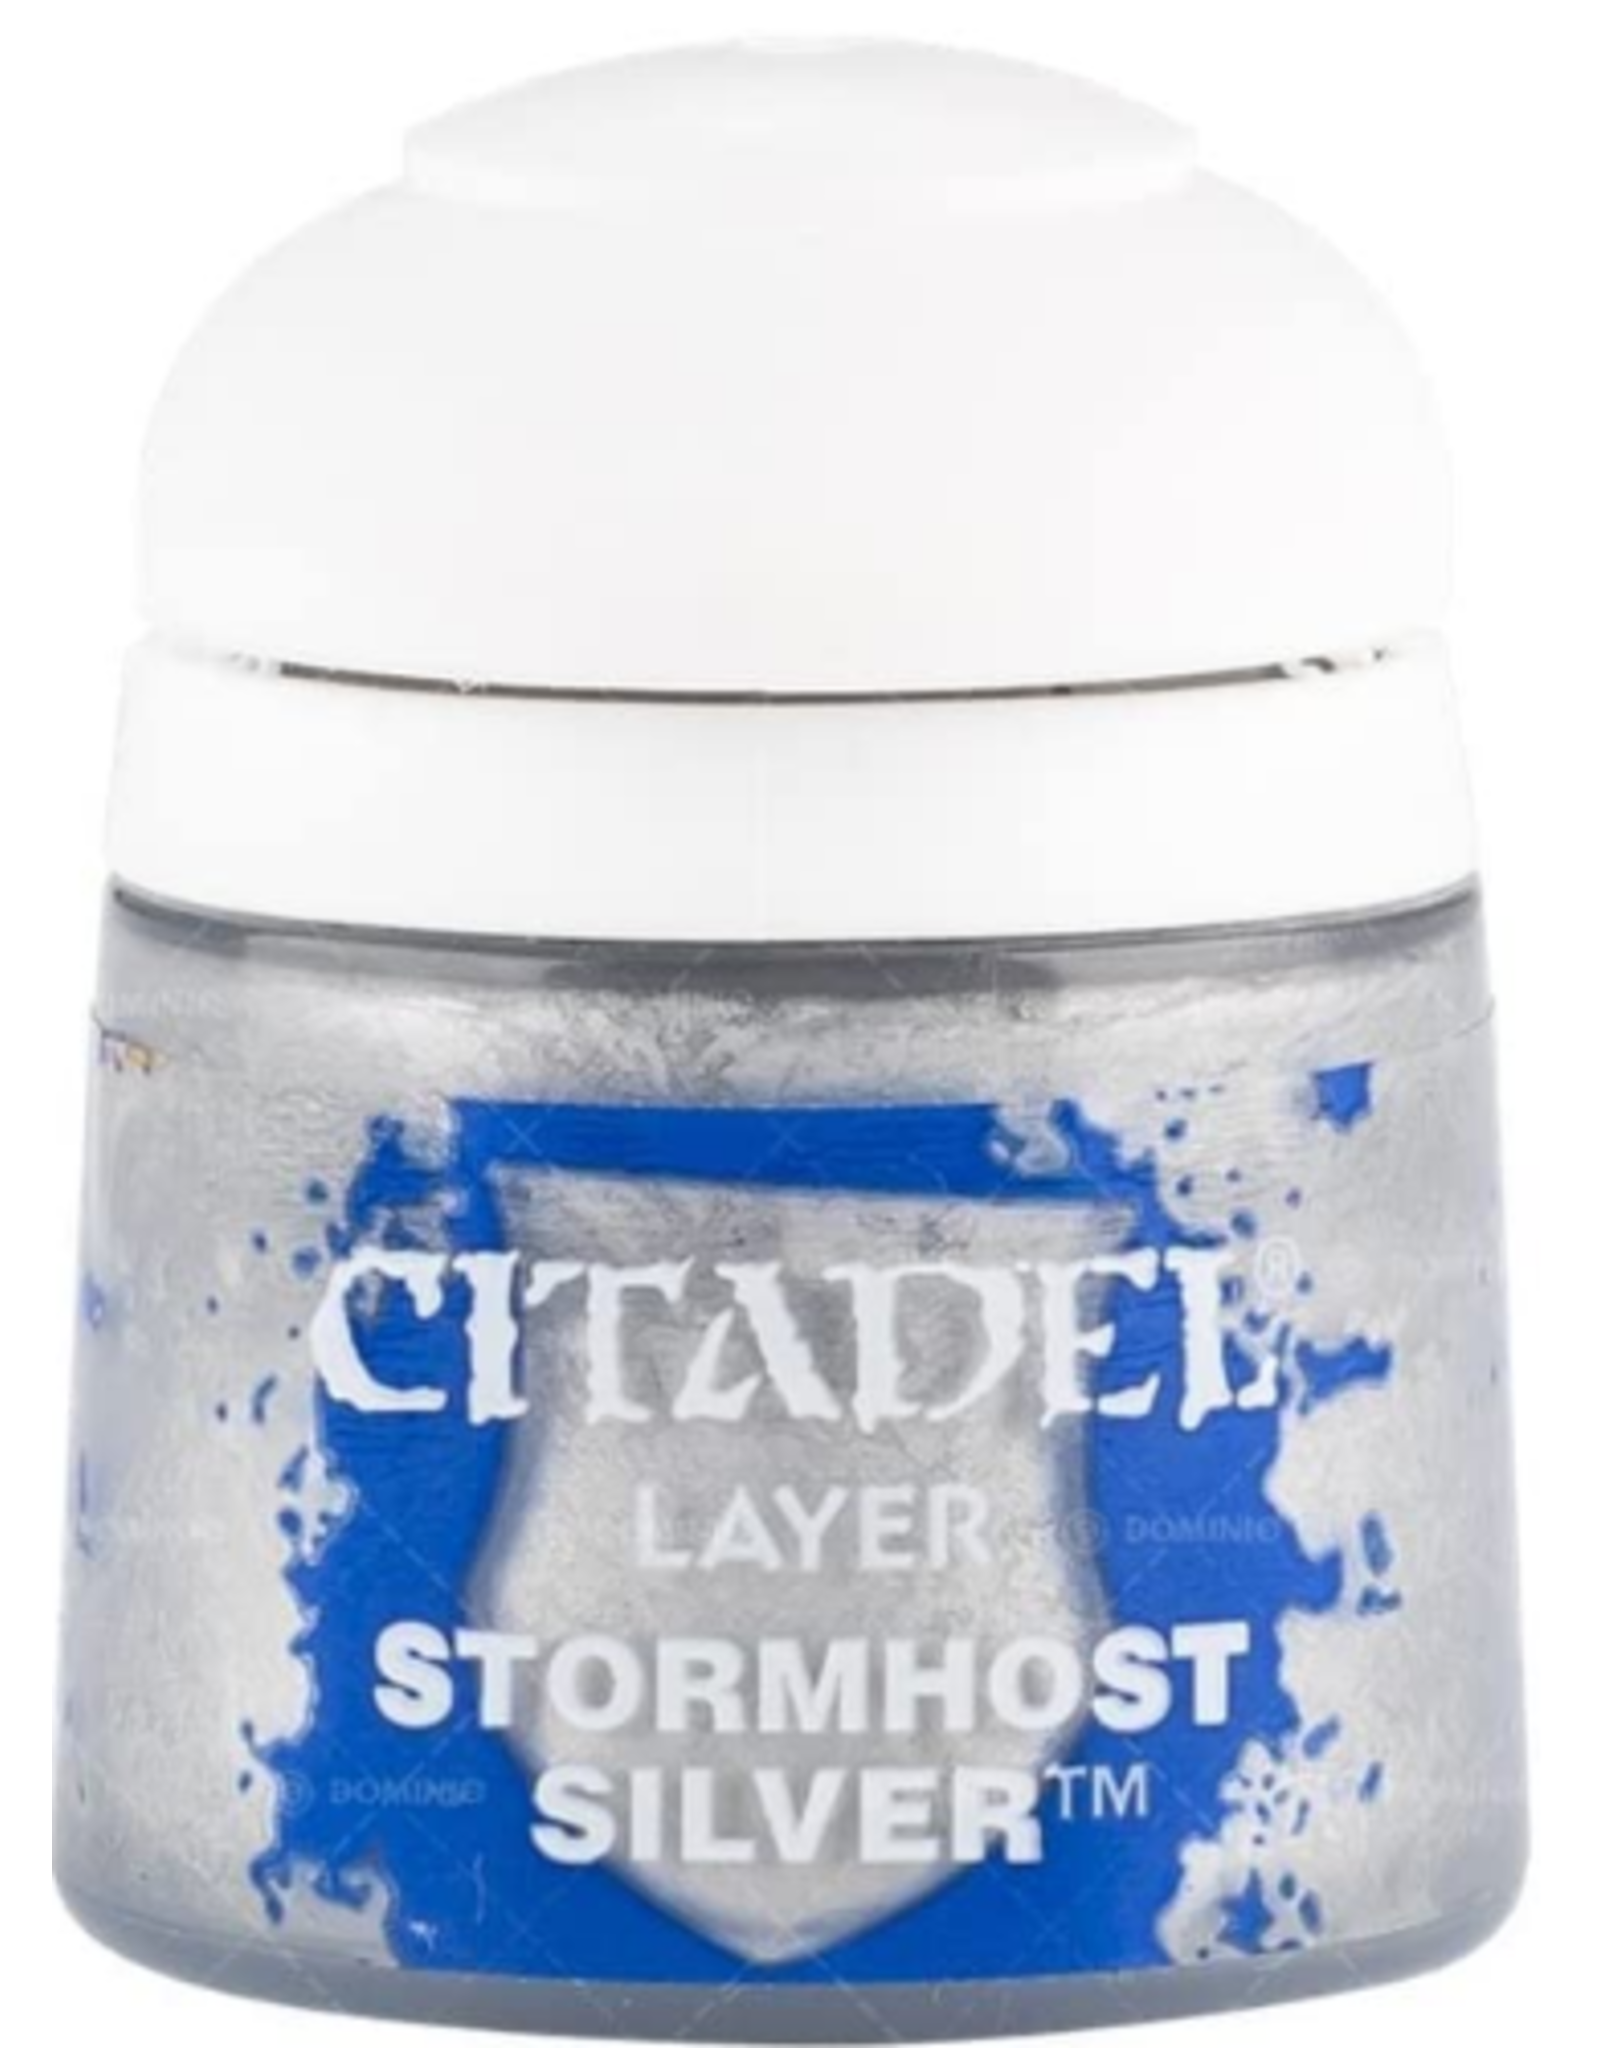 Games Workshop Citadel: Layer Stormhost Silver